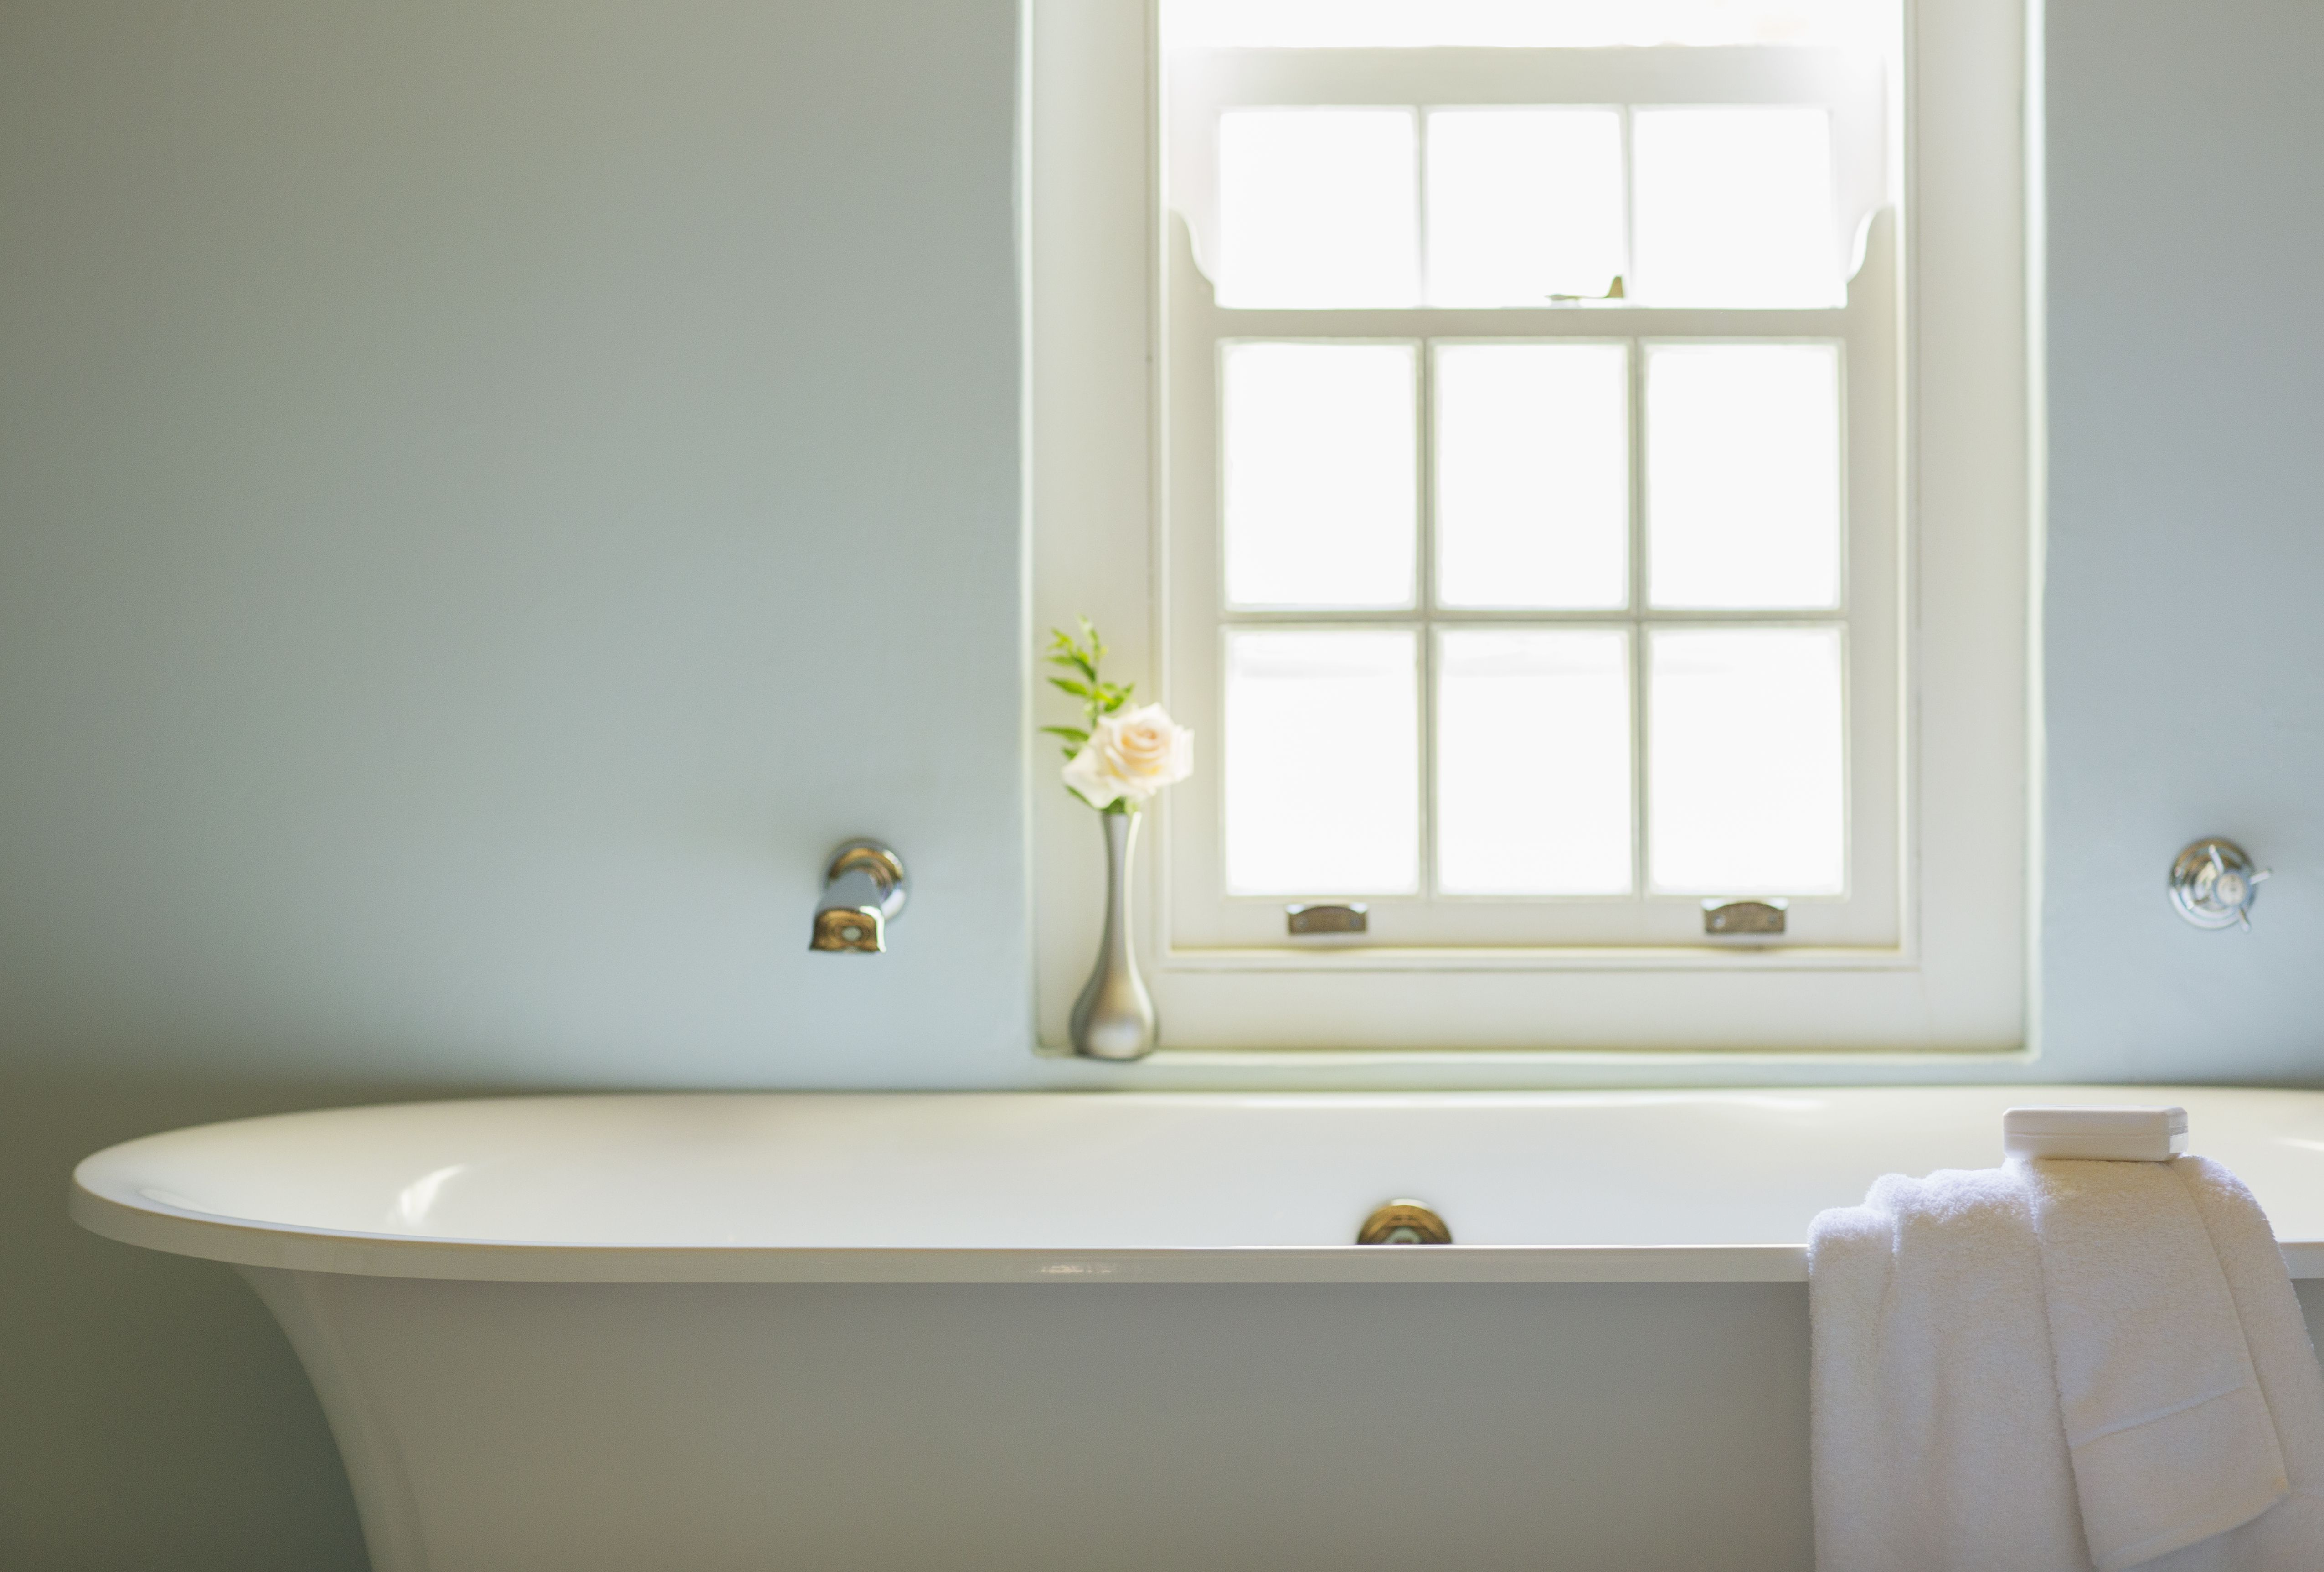 How to Choose the Best Bathtub: Fiberglass vs. Cast Iron